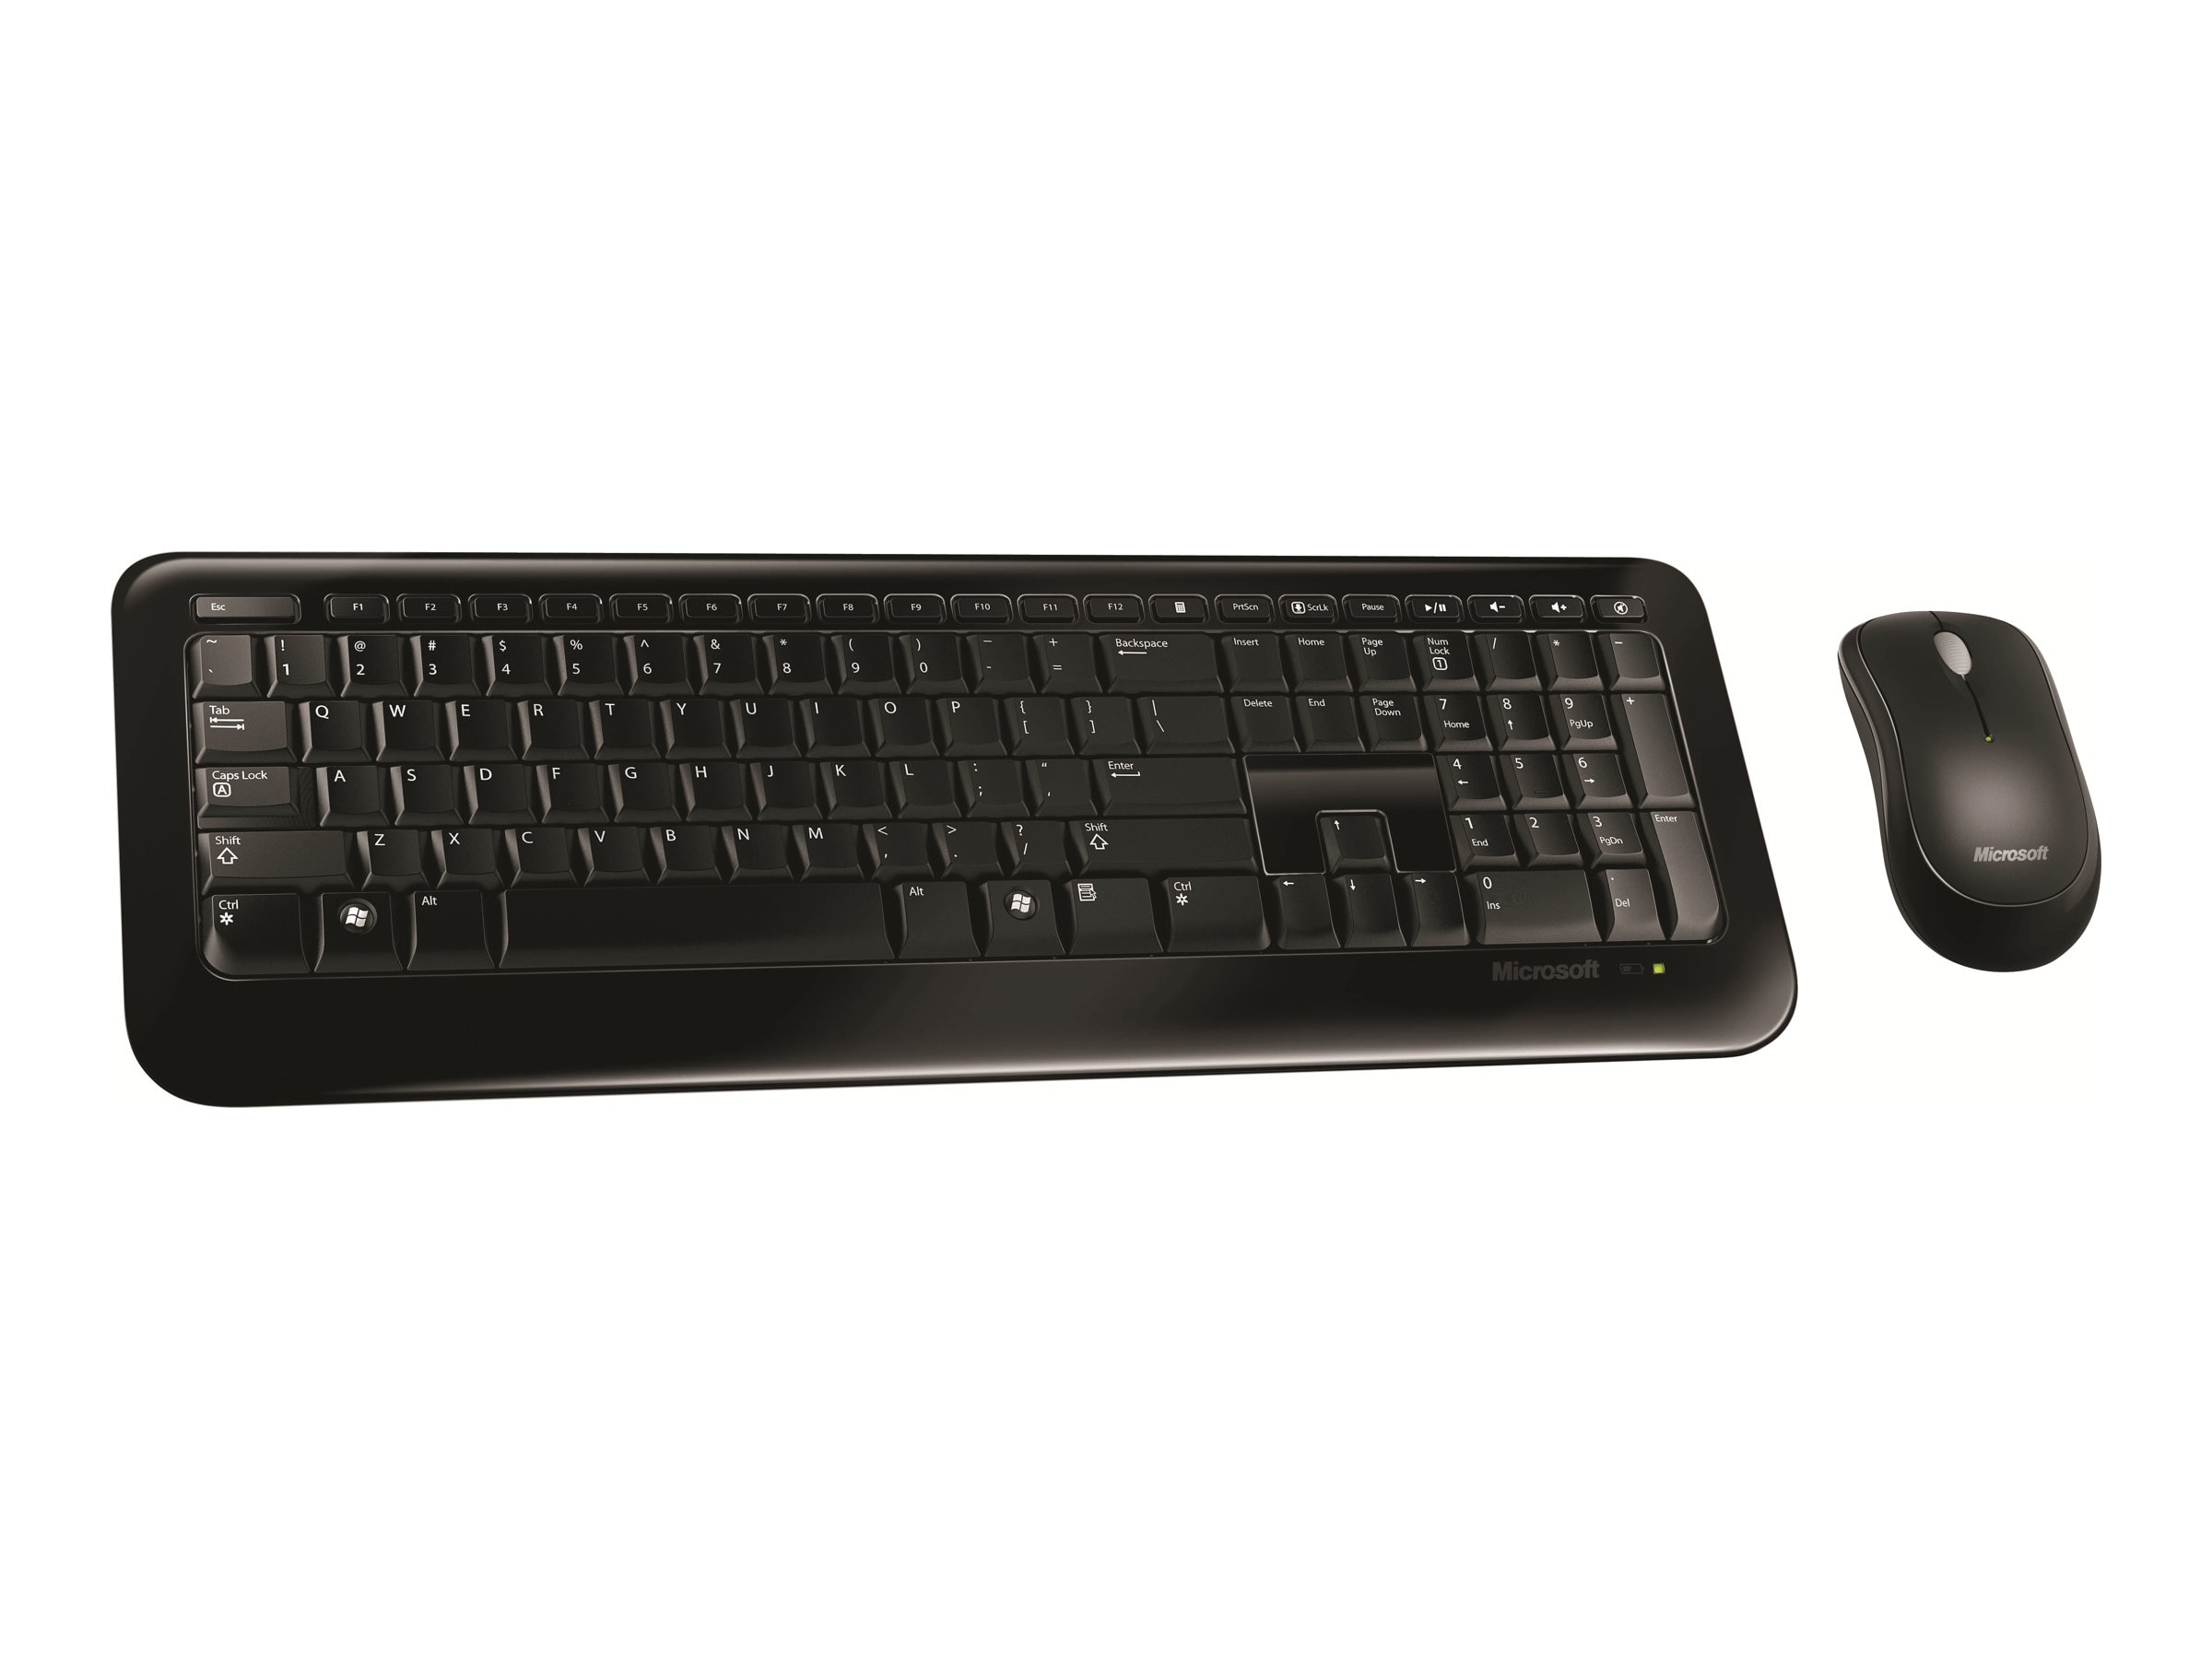 Microsoft Wireless USB Keyboard Mouse Combo, Black, 2LF-00001